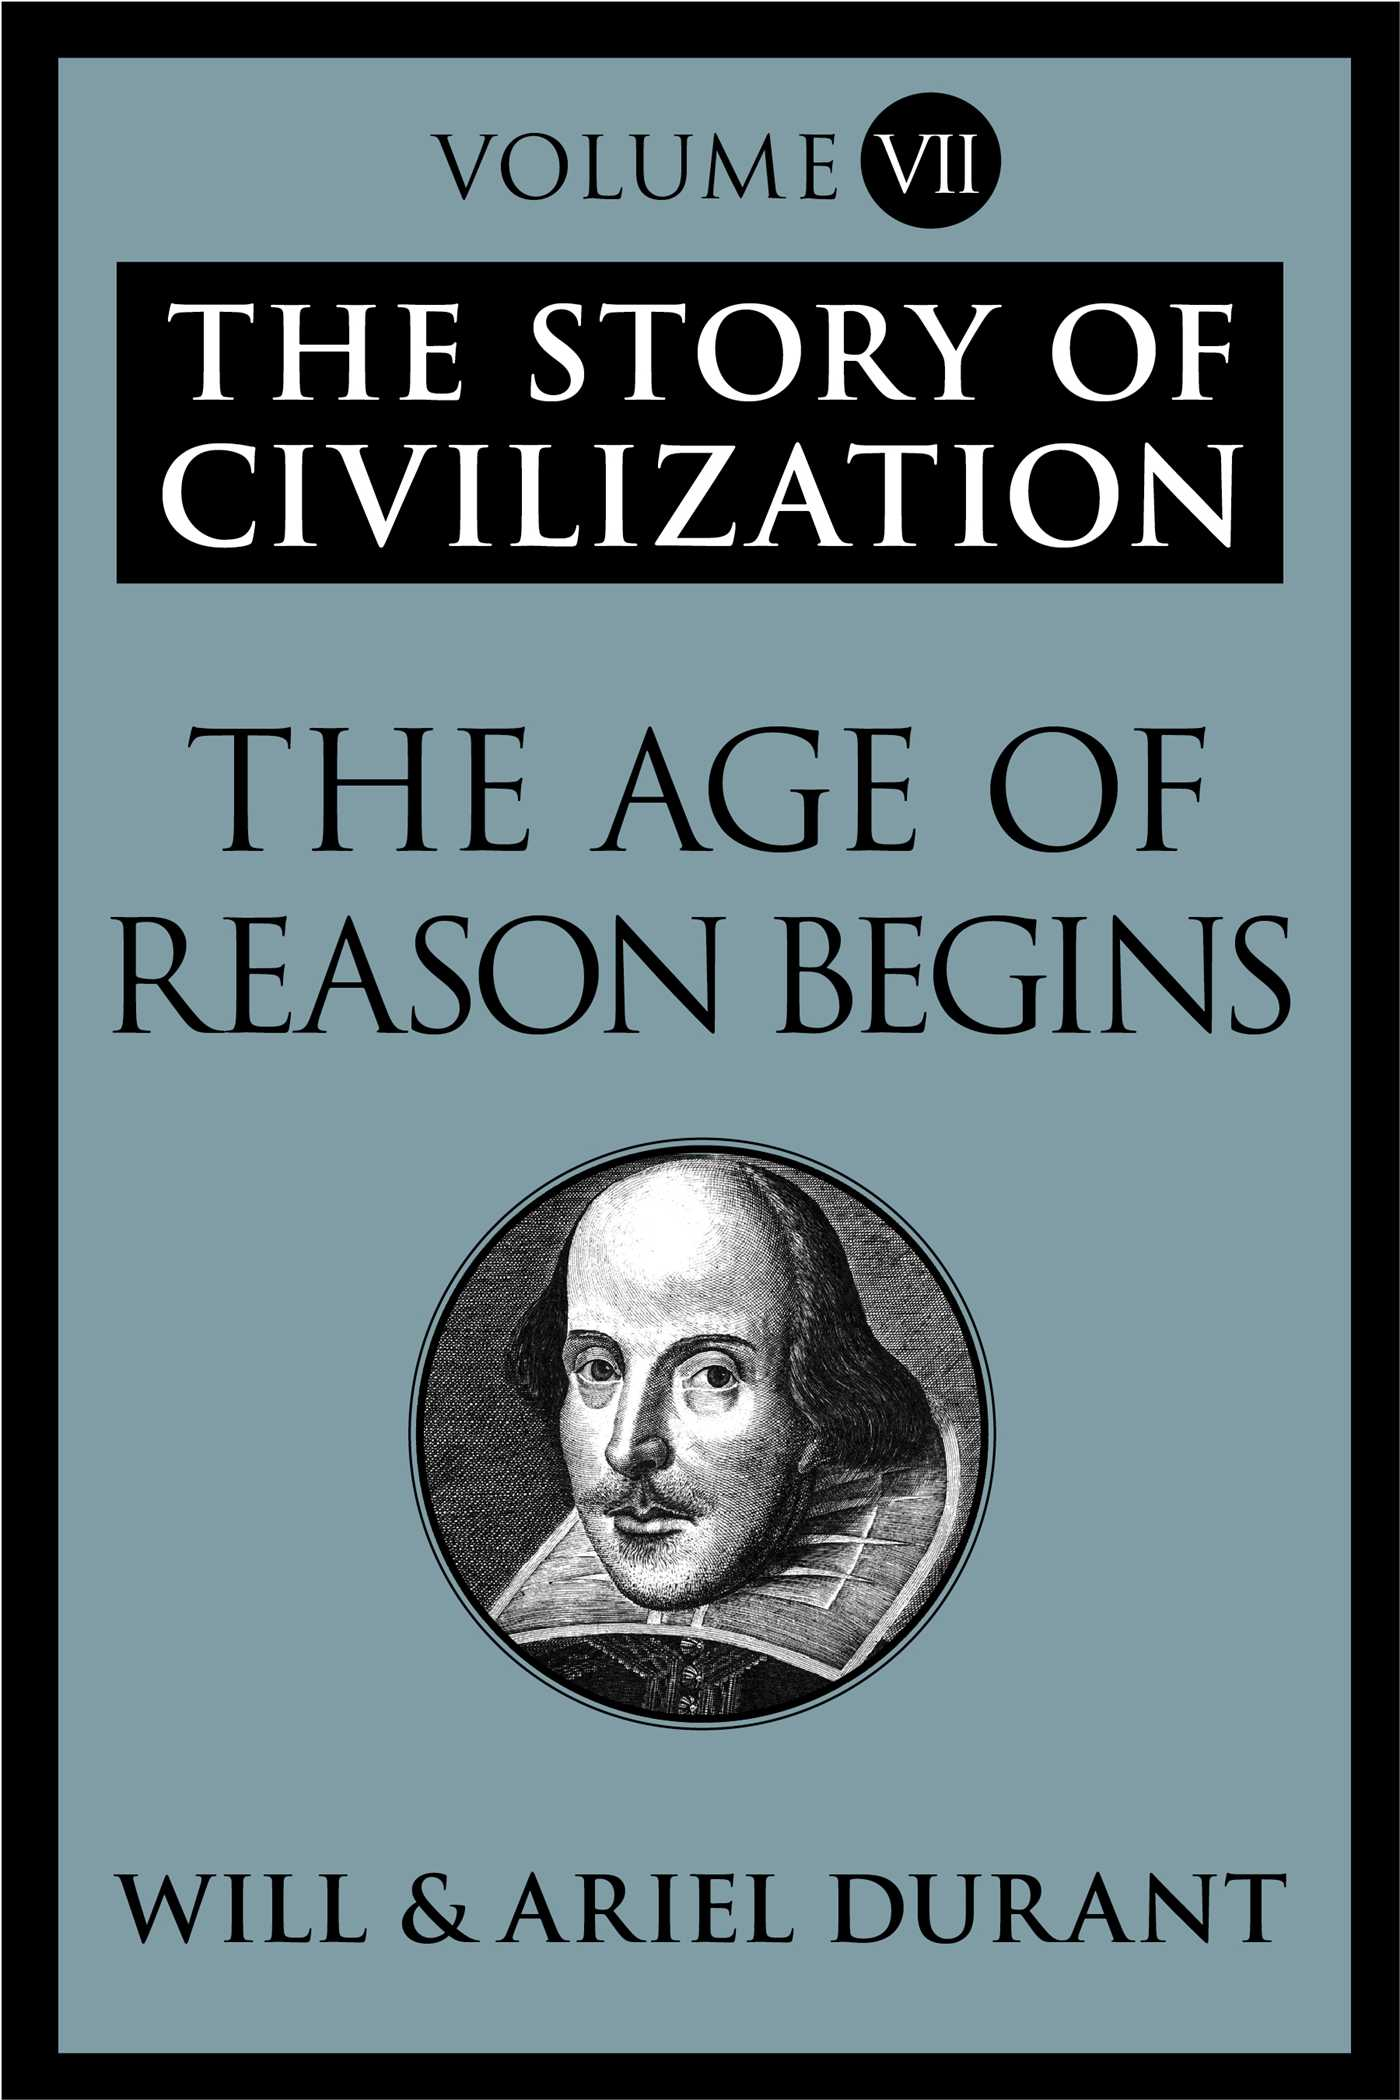 Book Cover Image (jpg): The Age of Reason Begins